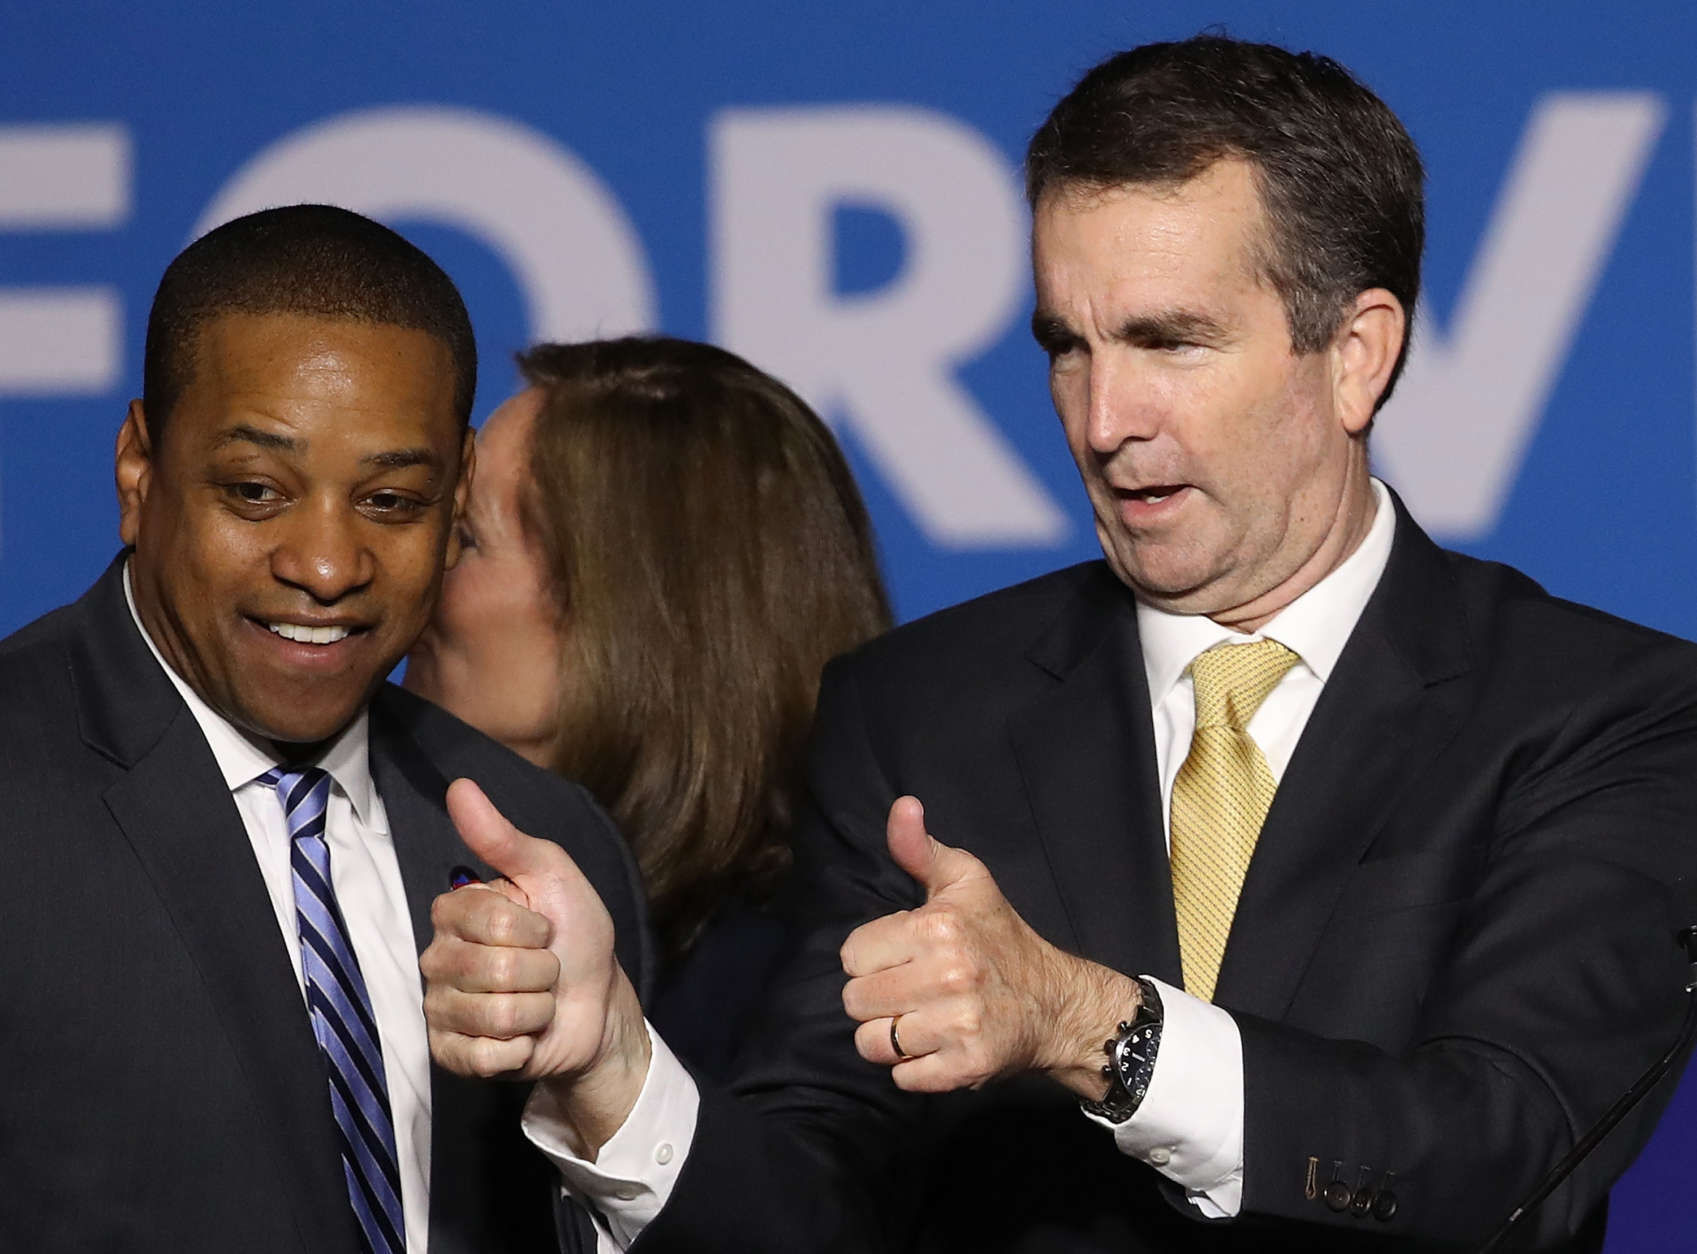 FAIRFAX, VA - NOVEMBER 07:  Gov.-elect Ralph Northam (R) and Lt. Gov.-elect Justin Fairfax greet supporters at an election night rally November 7, 2017 in Fairfax, Virginia. Northam defeated Republican candidate Ed Gillespie.  (Photo by Win McNamee/Getty Images)